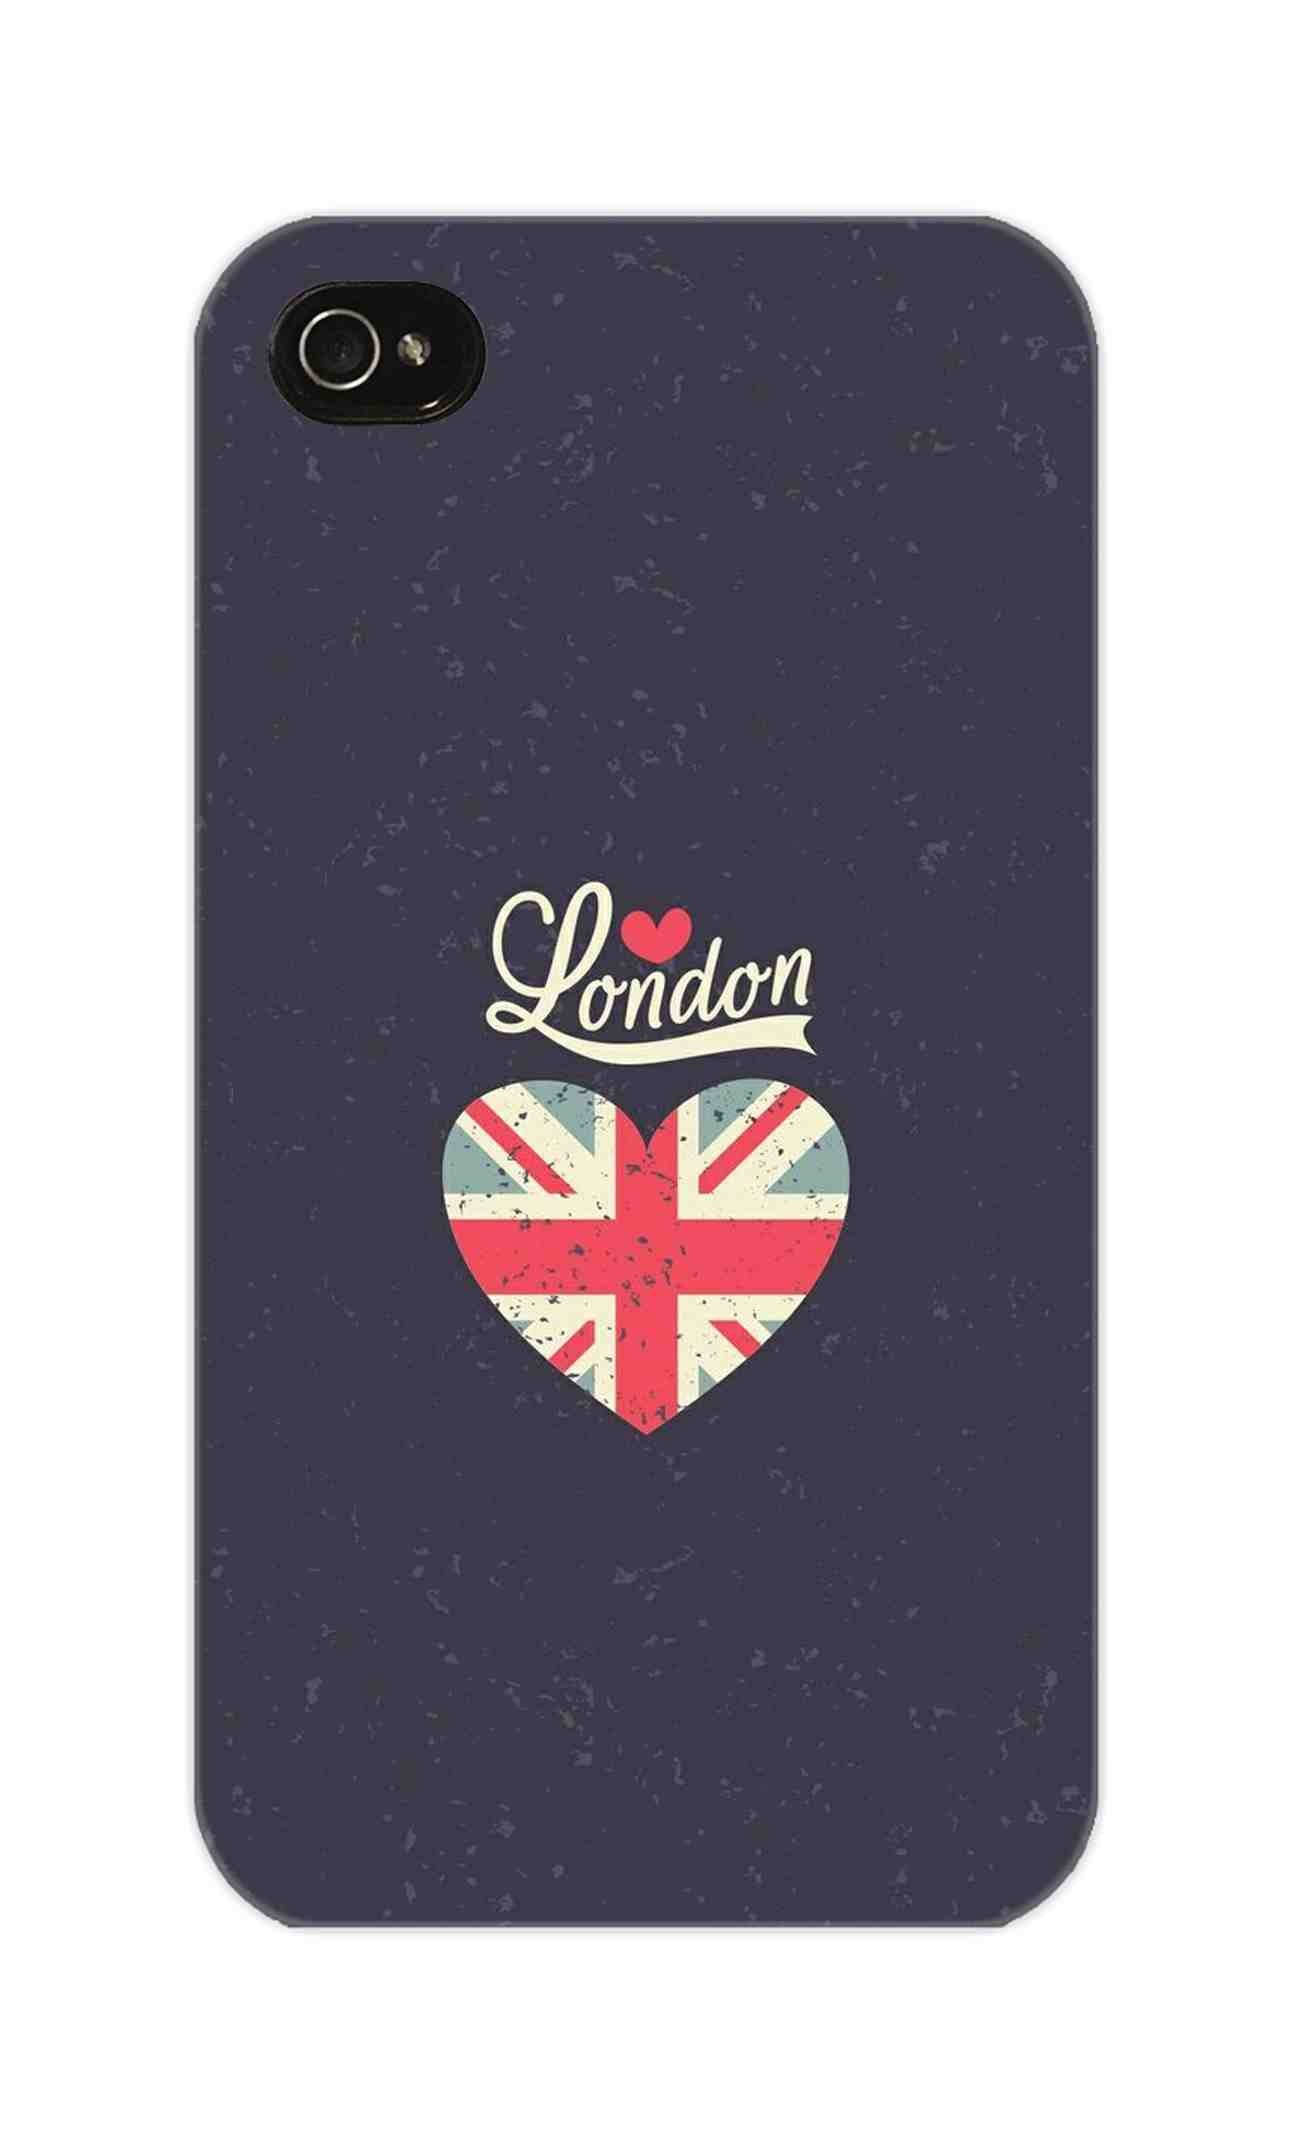 I Love London Typography Art For Artist iPhone 4 Mobile Cover Case - MADANYU